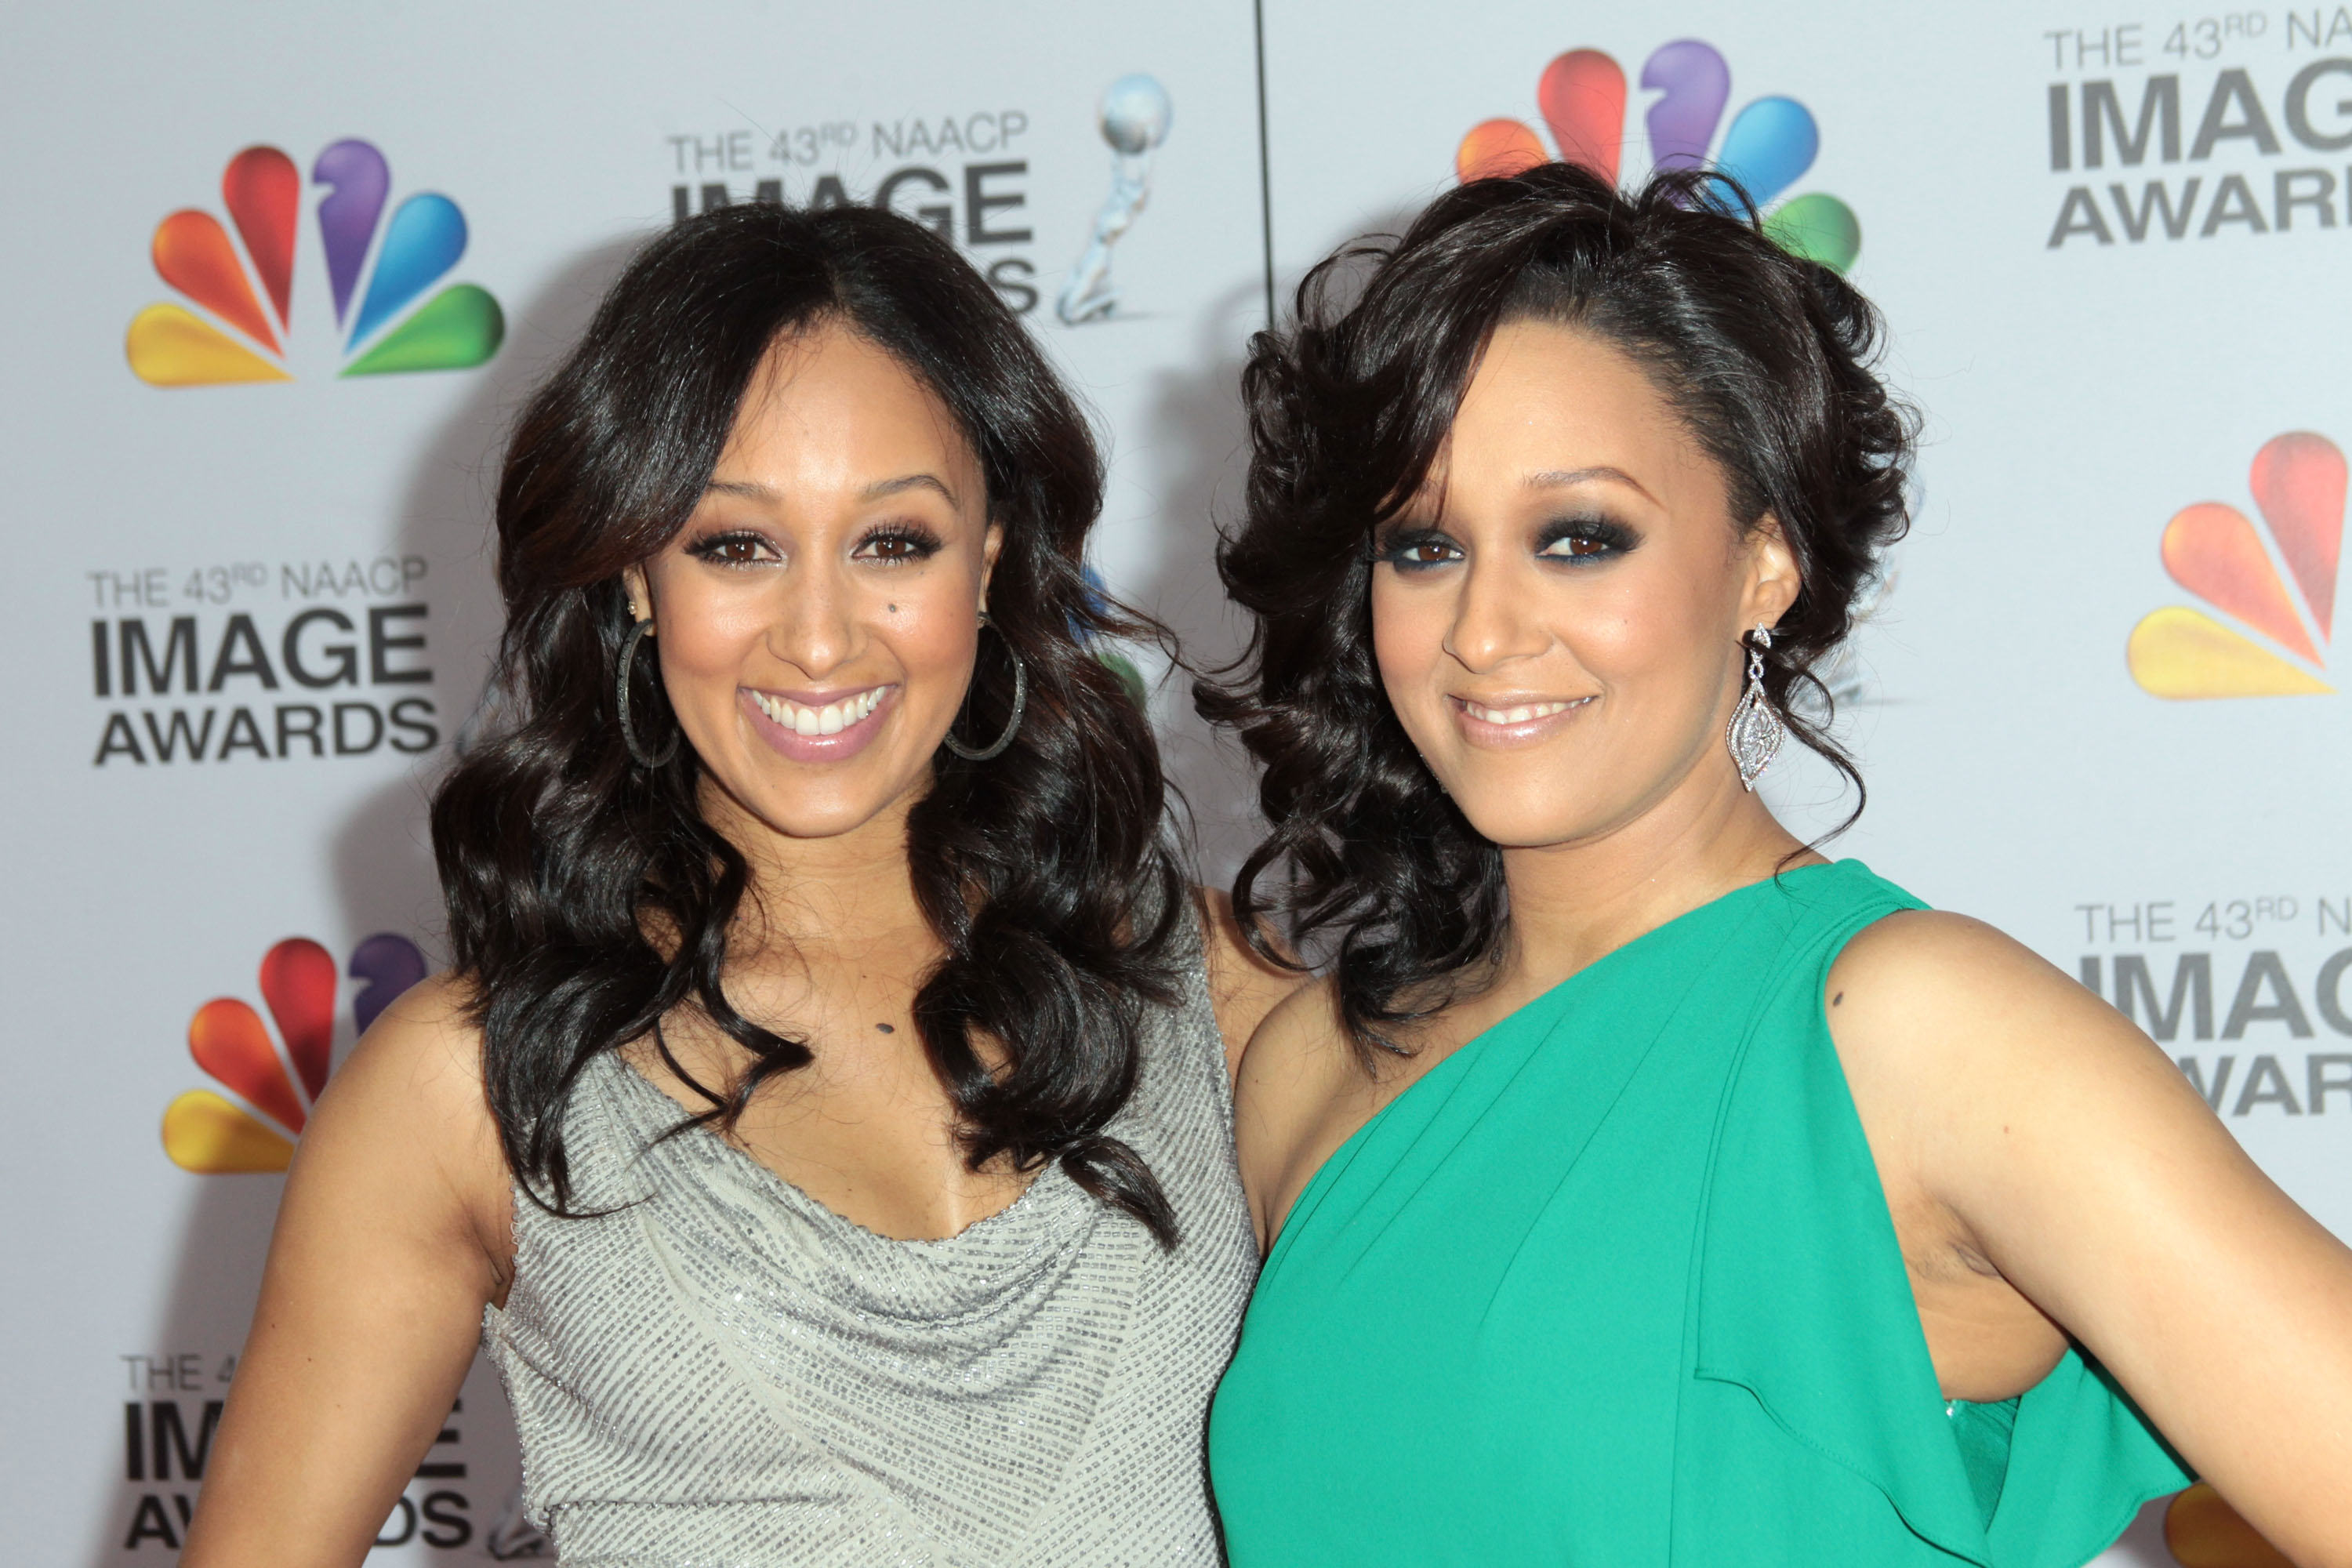 Actresses Tamera Mowry-Housley (L) and Tia Mowry arrive at the 43rd NAACP Image Awards held at The Shrine Auditorium on February 17, 2012 in Los Angeles, California.